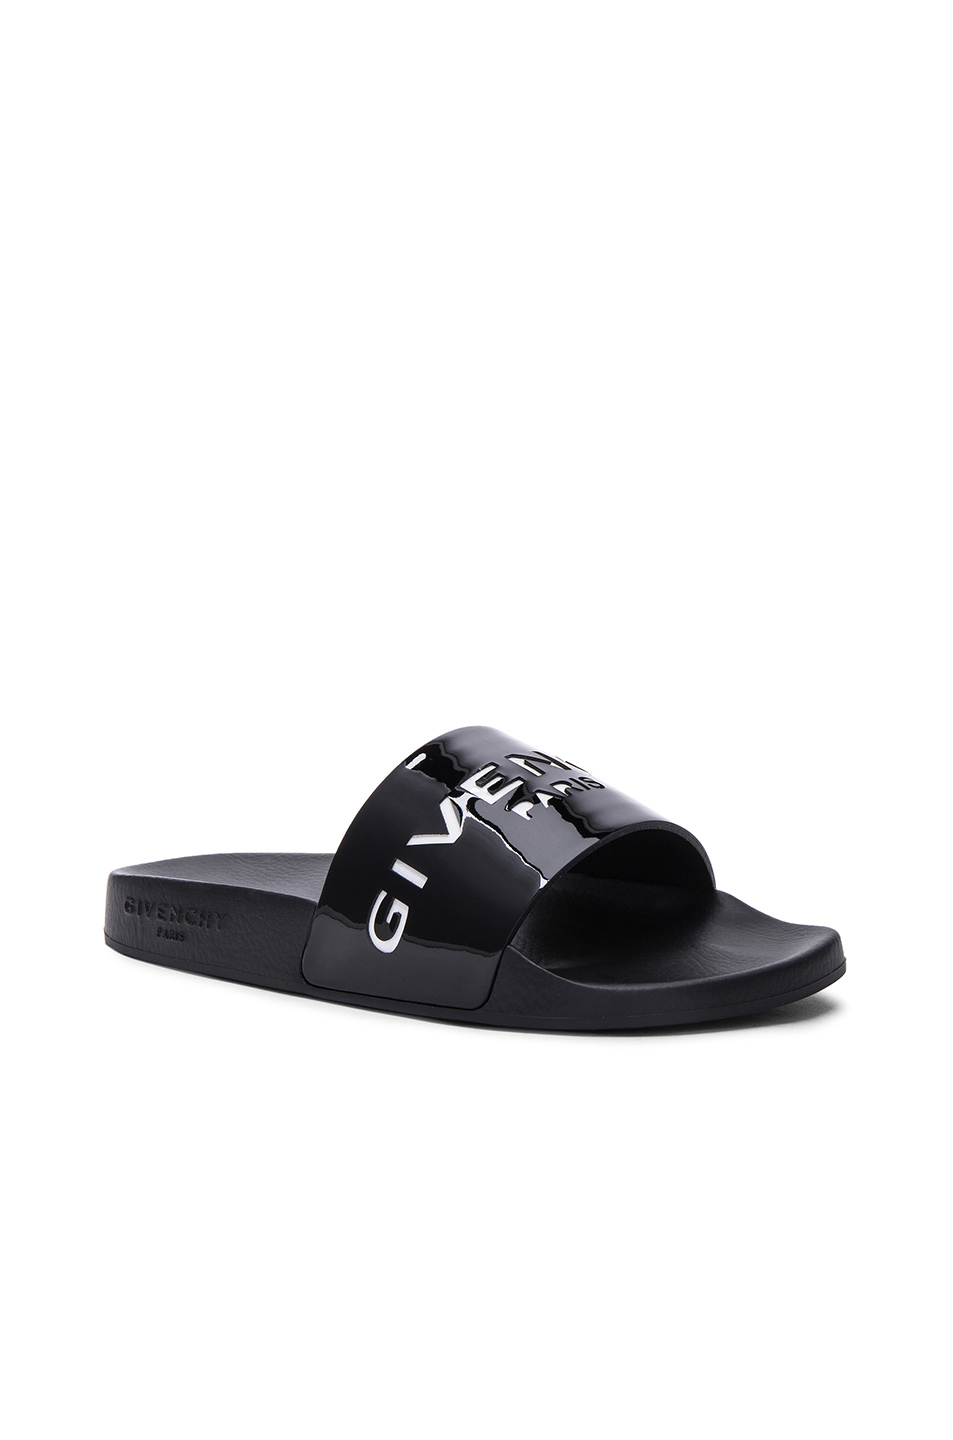 Givenchy Leather Slide Sandals sale big discount clearance with credit card great deals for sale Xbw55